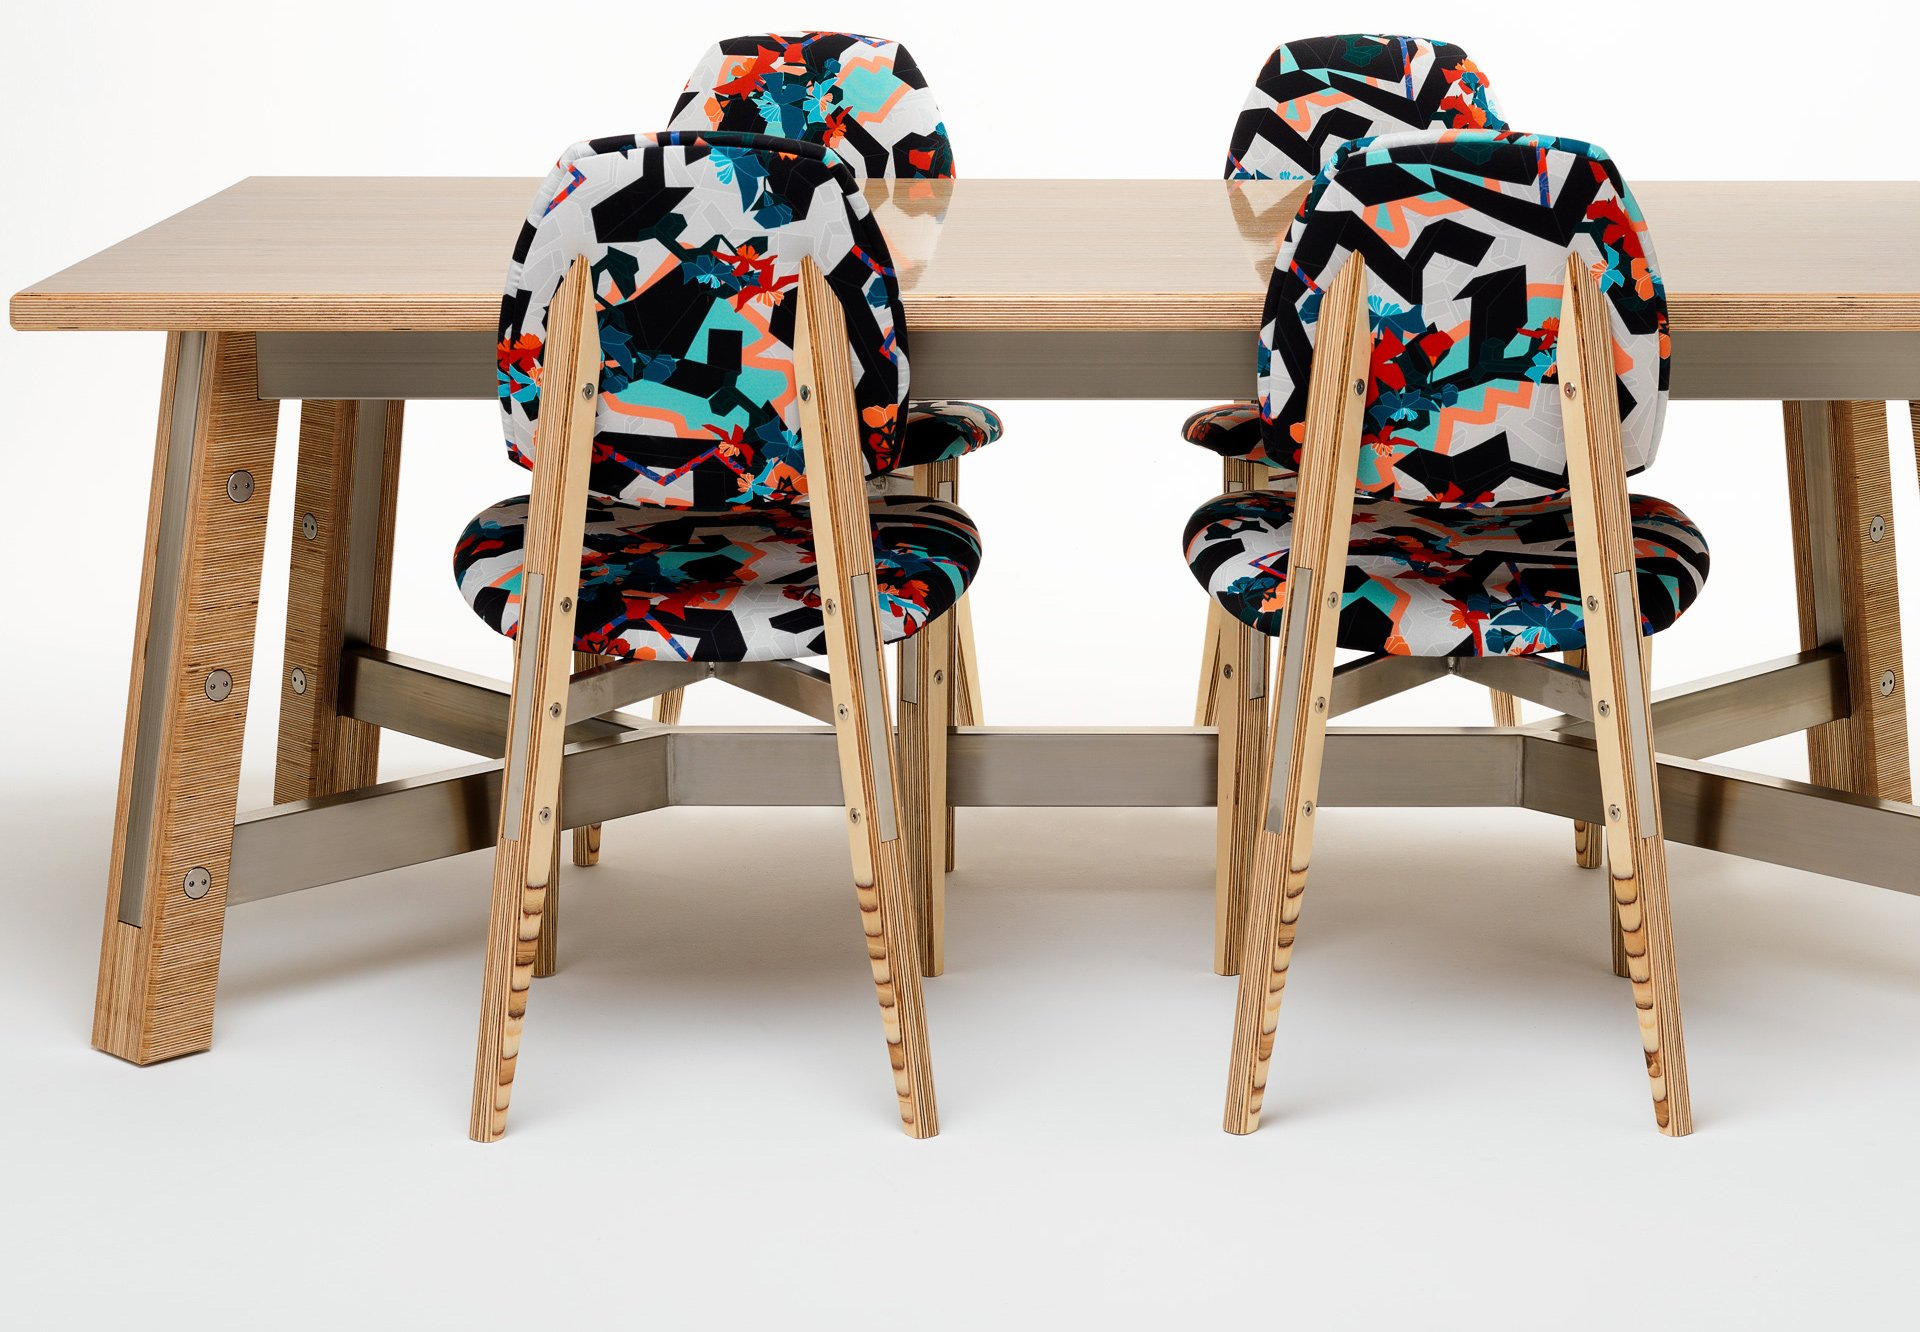 Furniture designer adelaide zedex table and chairs